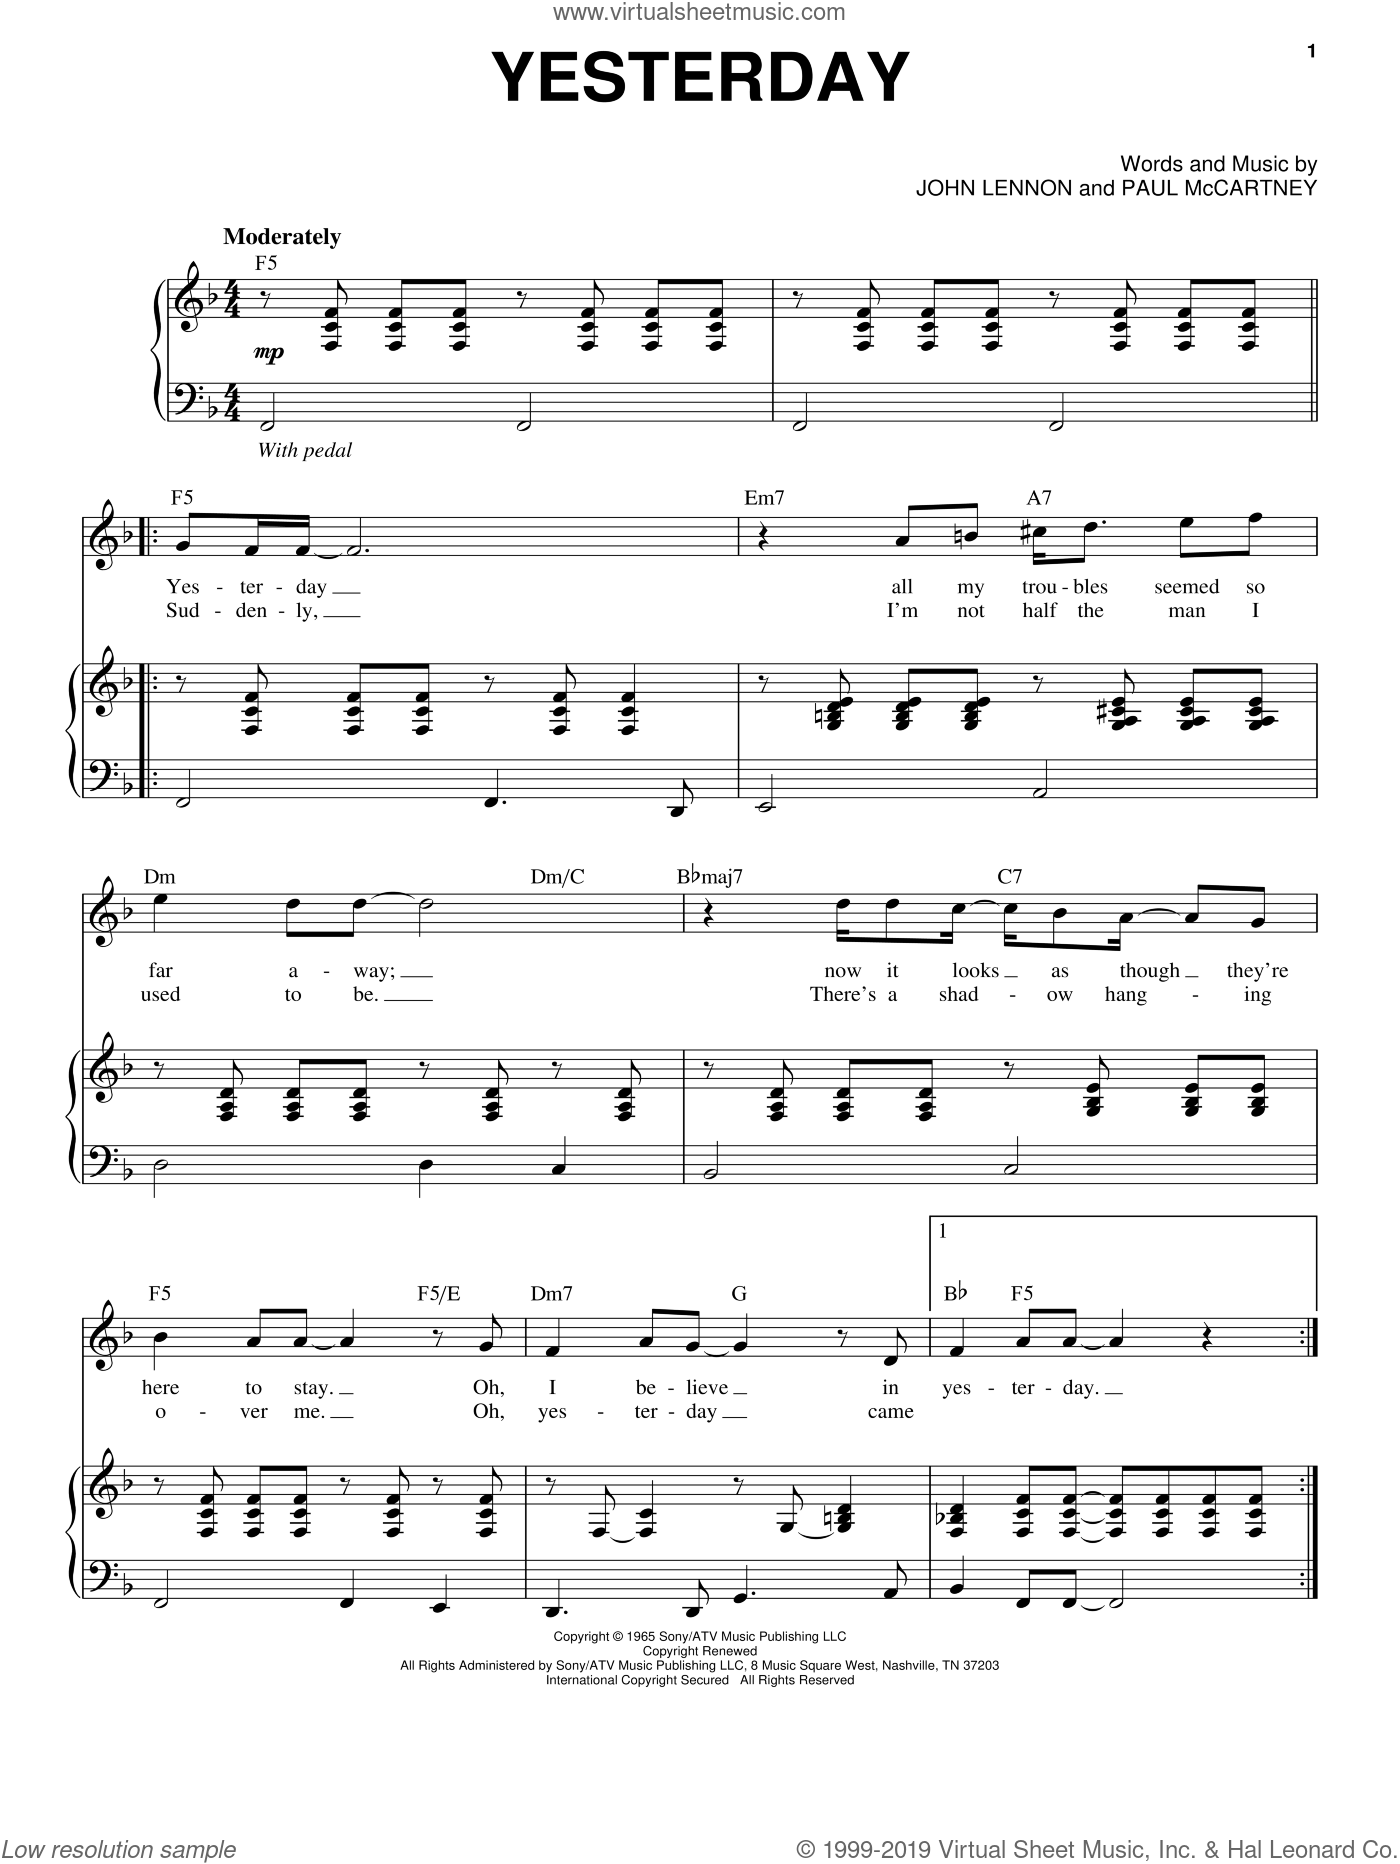 Yesterday sheet music for voice and piano by The Beatles